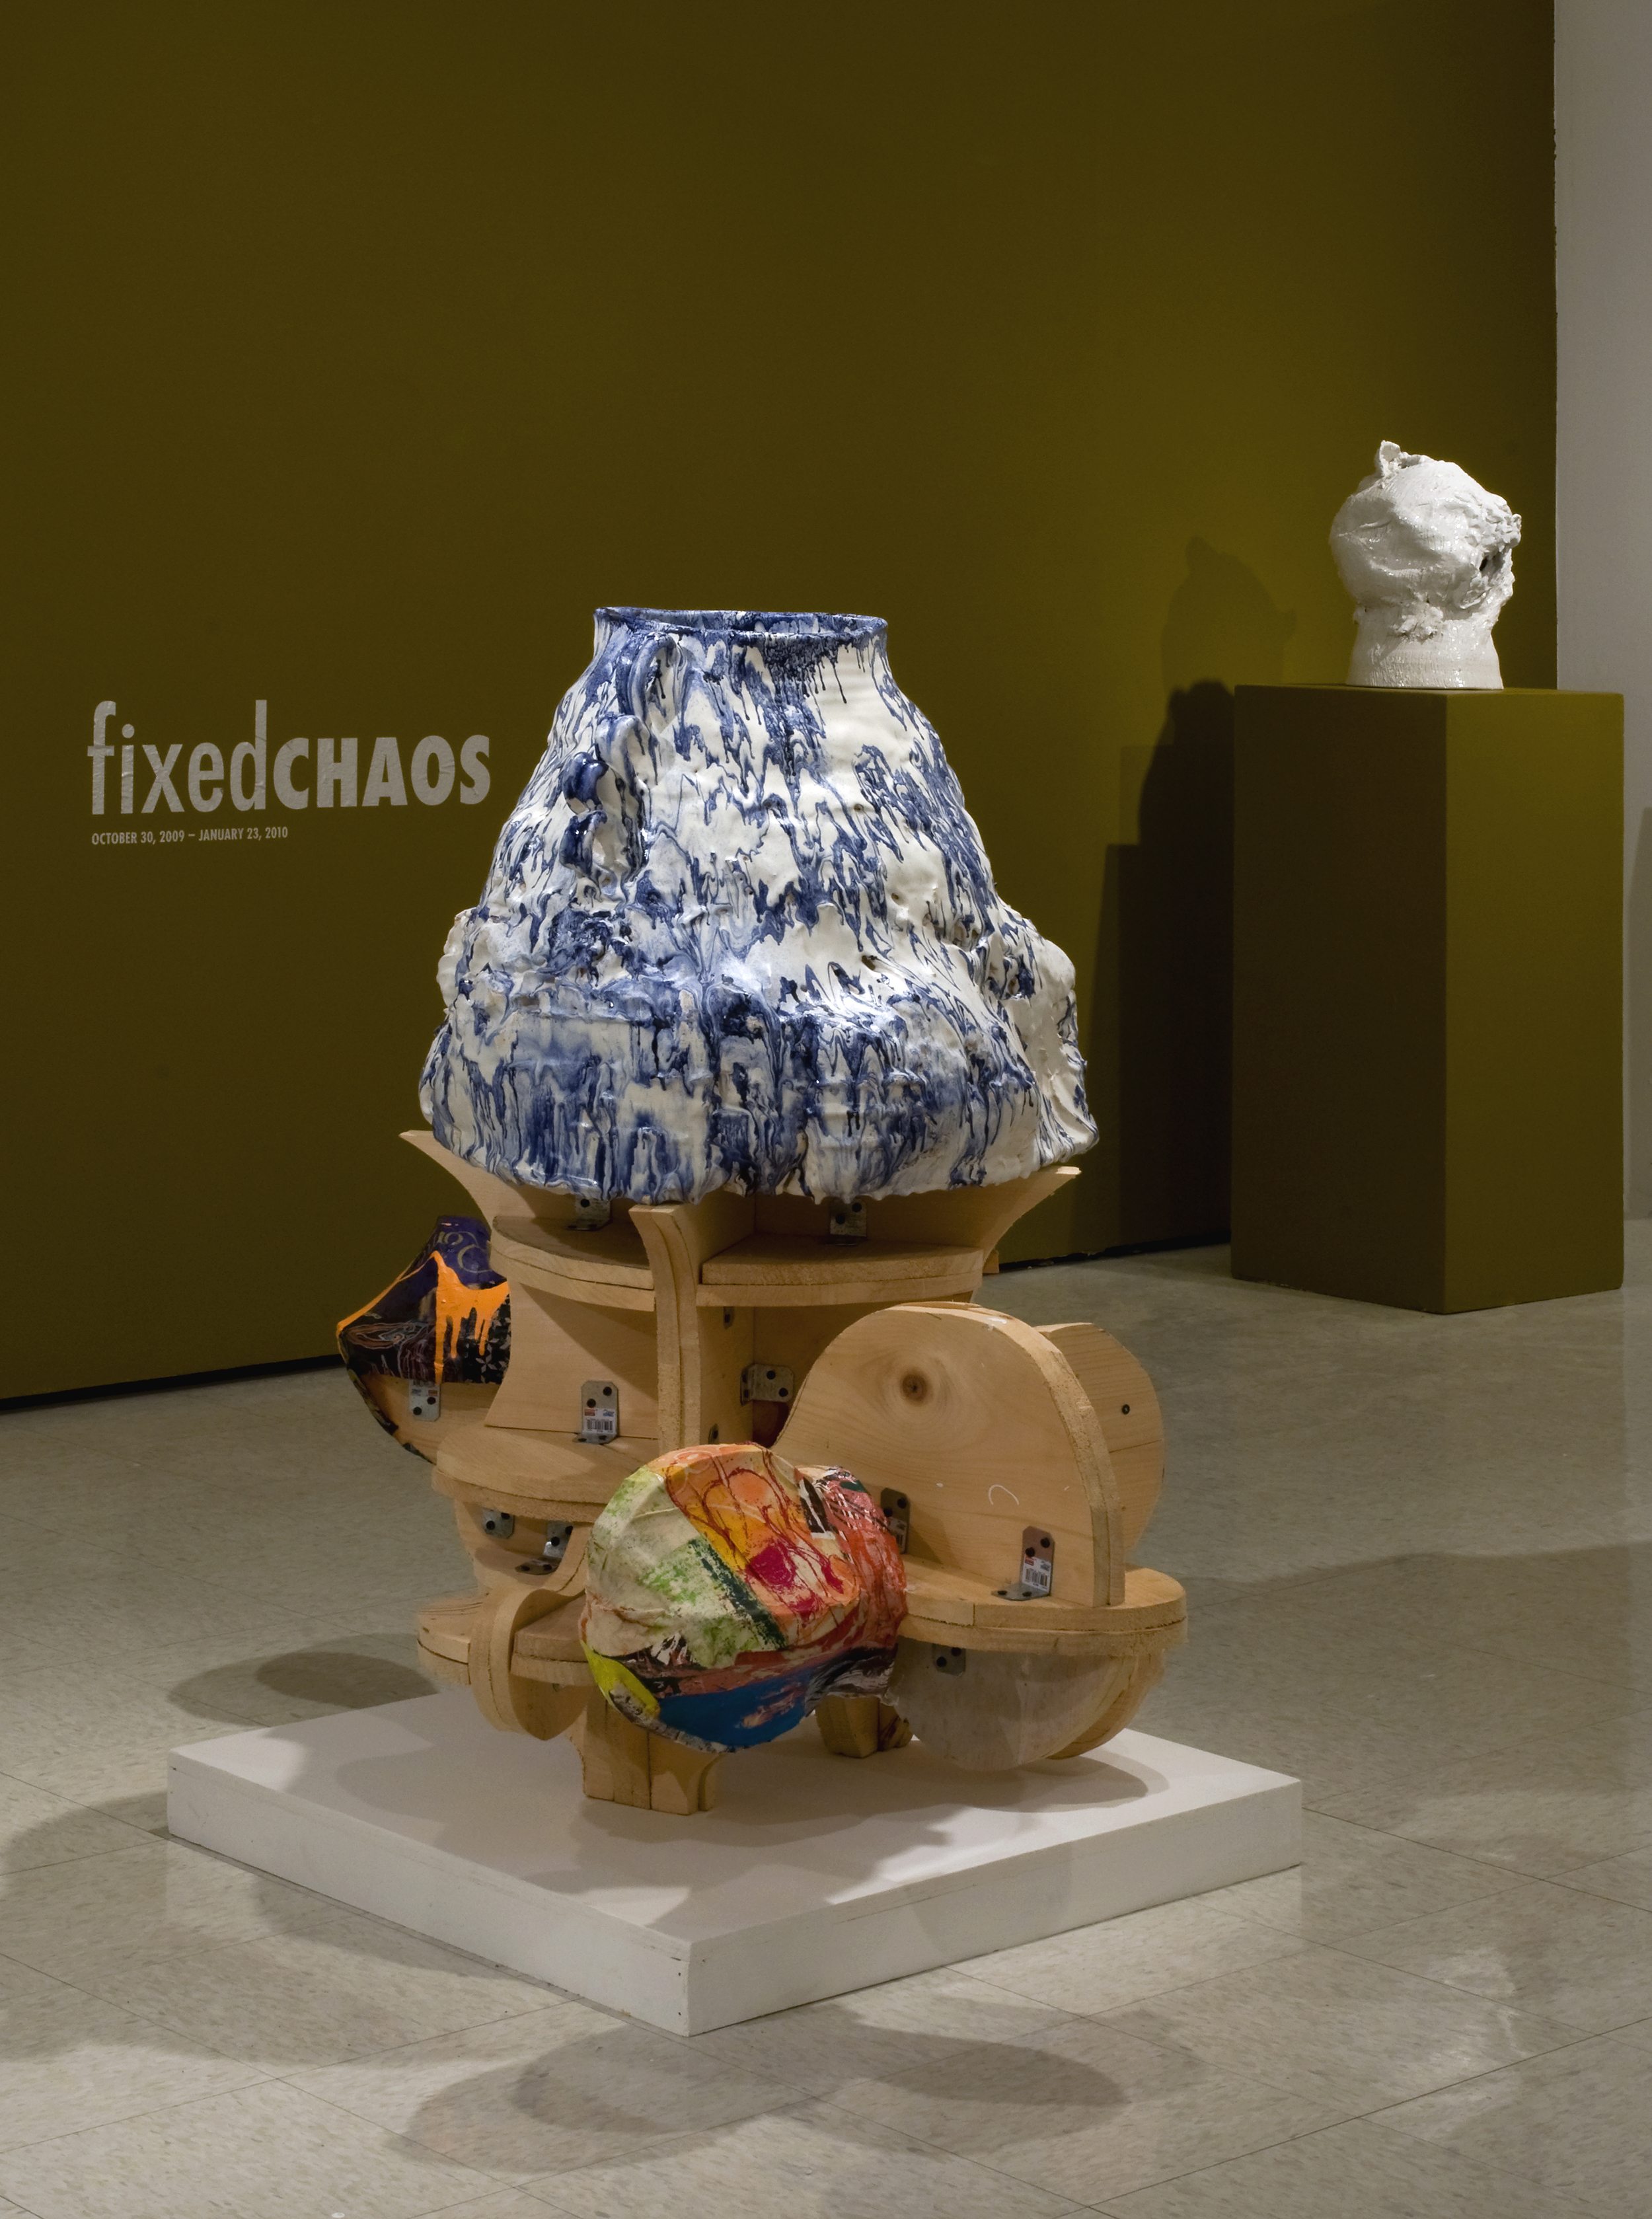 Fixed Chaos Installation View, 2010